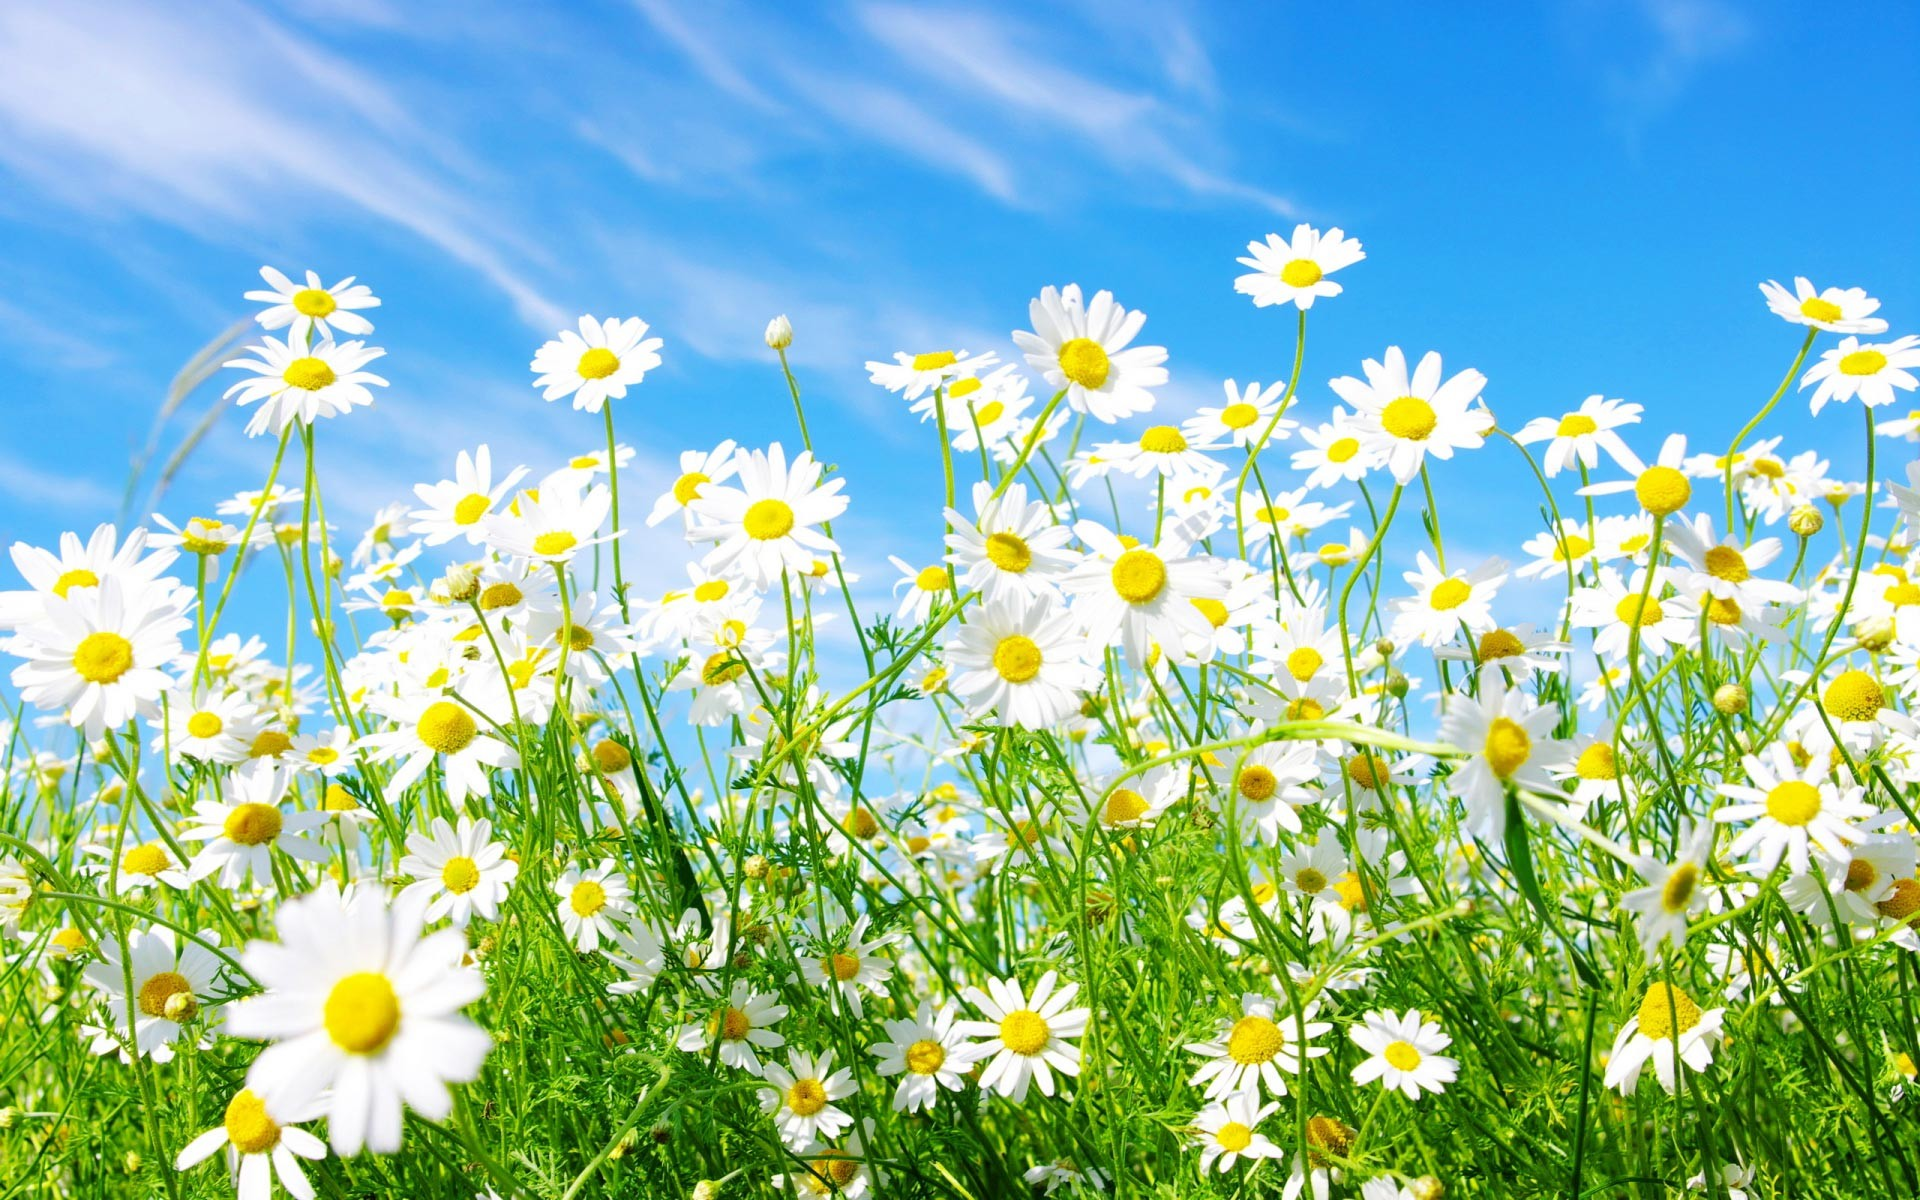 1920x1200 Spring Daisy Hd Widescreen Wallpapers.